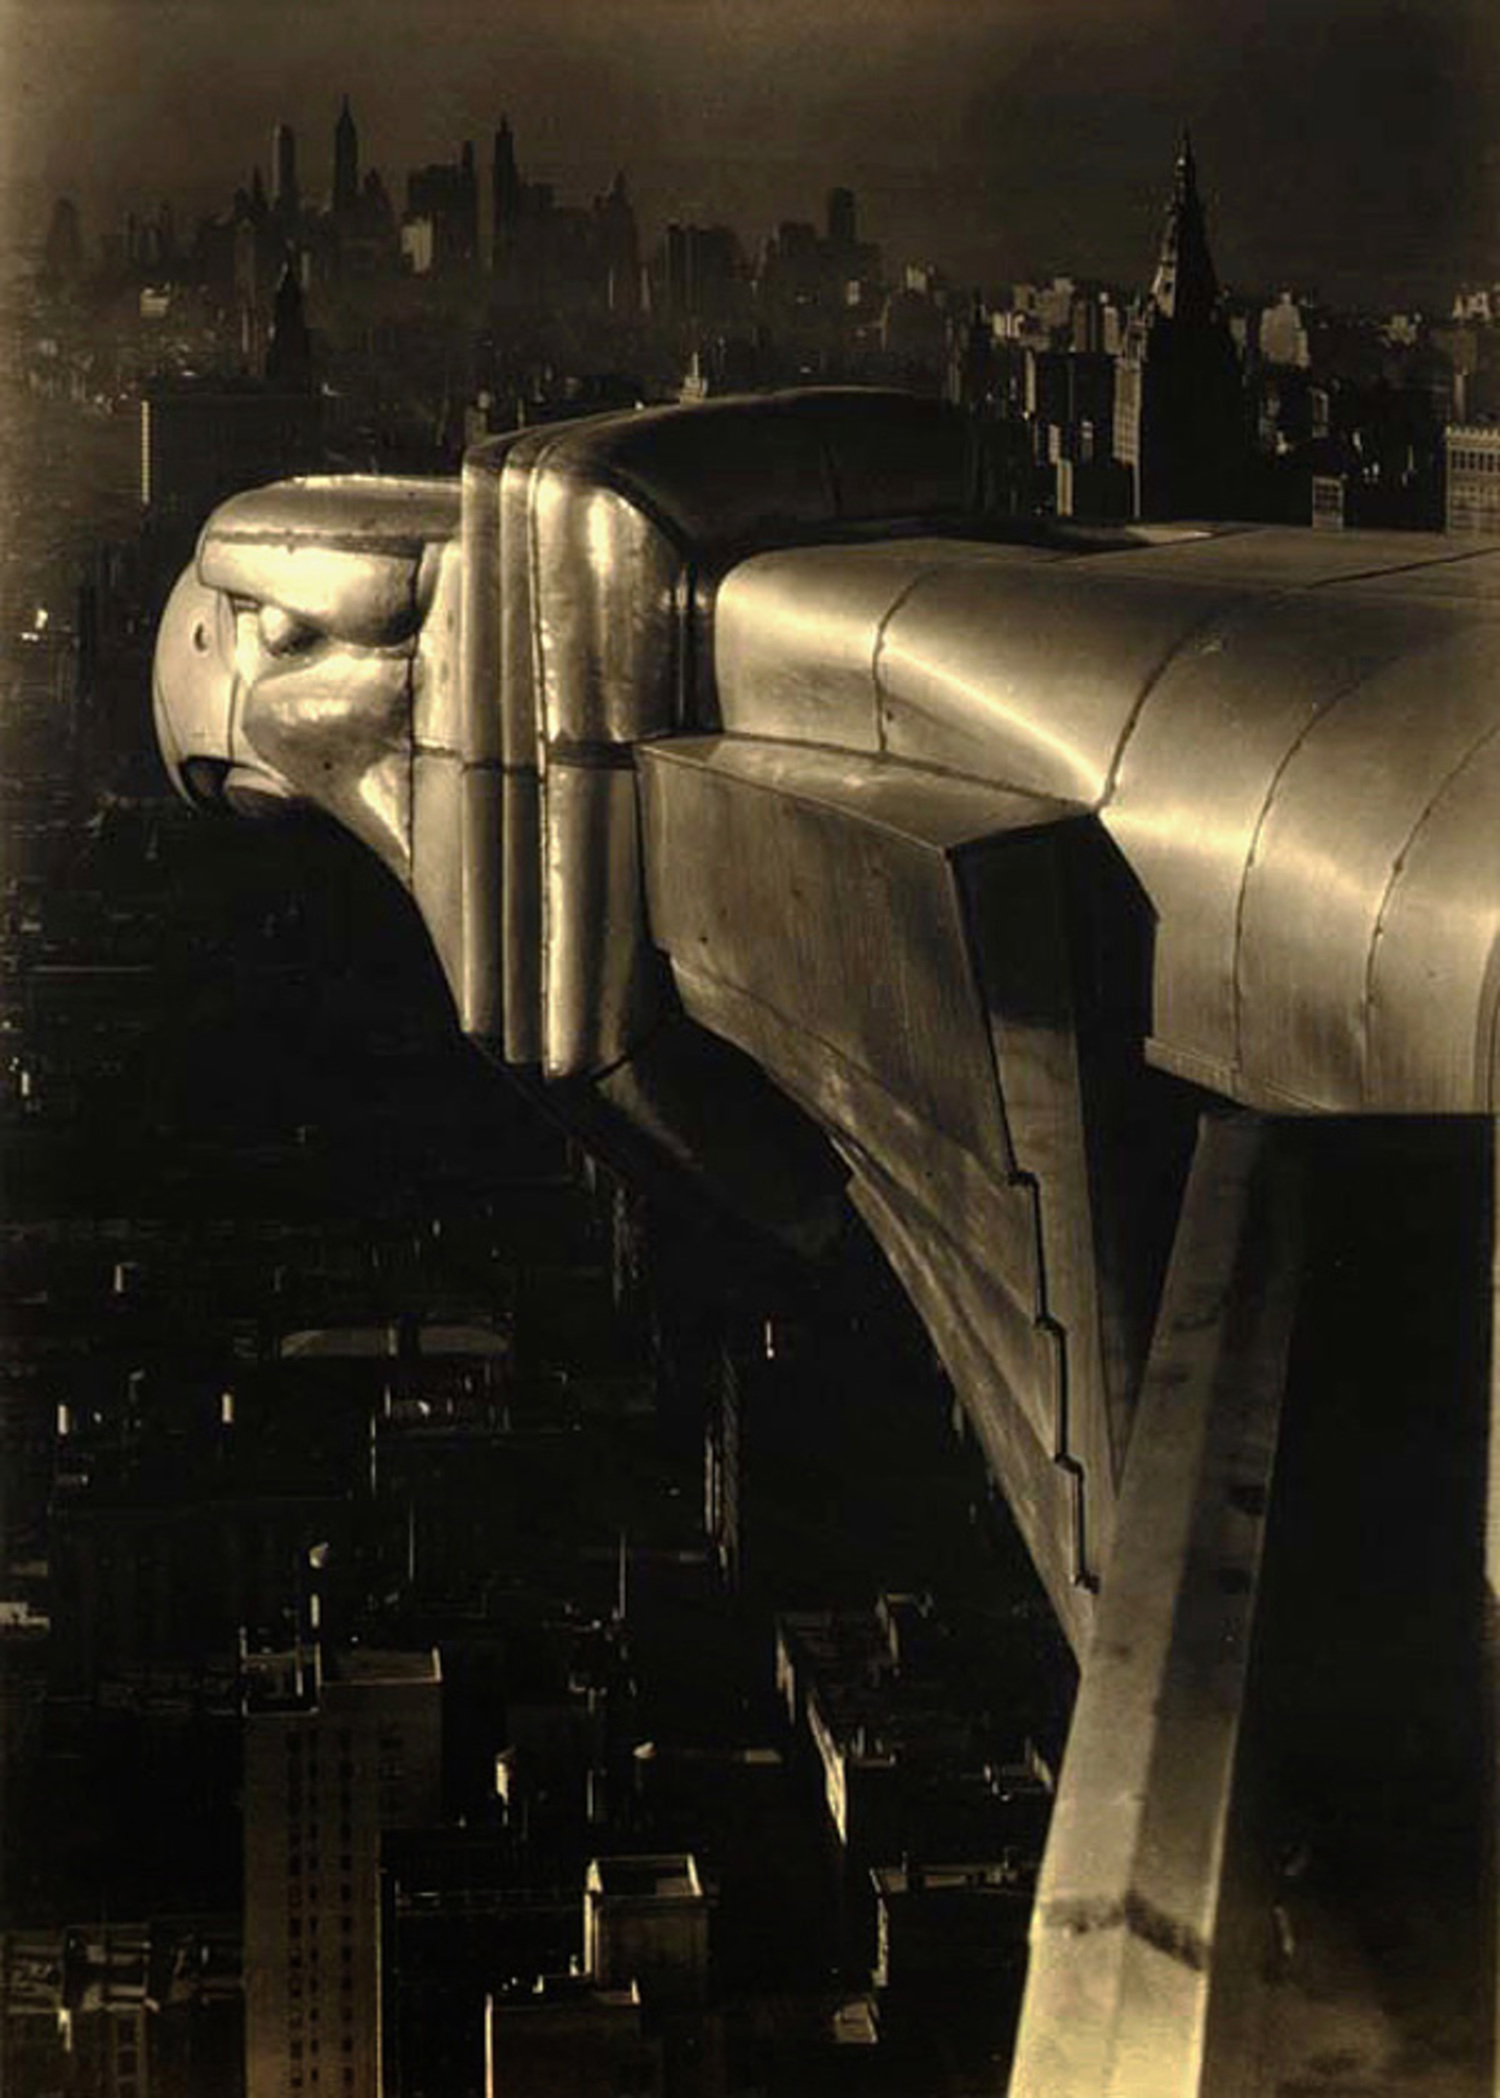 Chrysler Building, New York City, 1930 by Margaret Bourke-White.